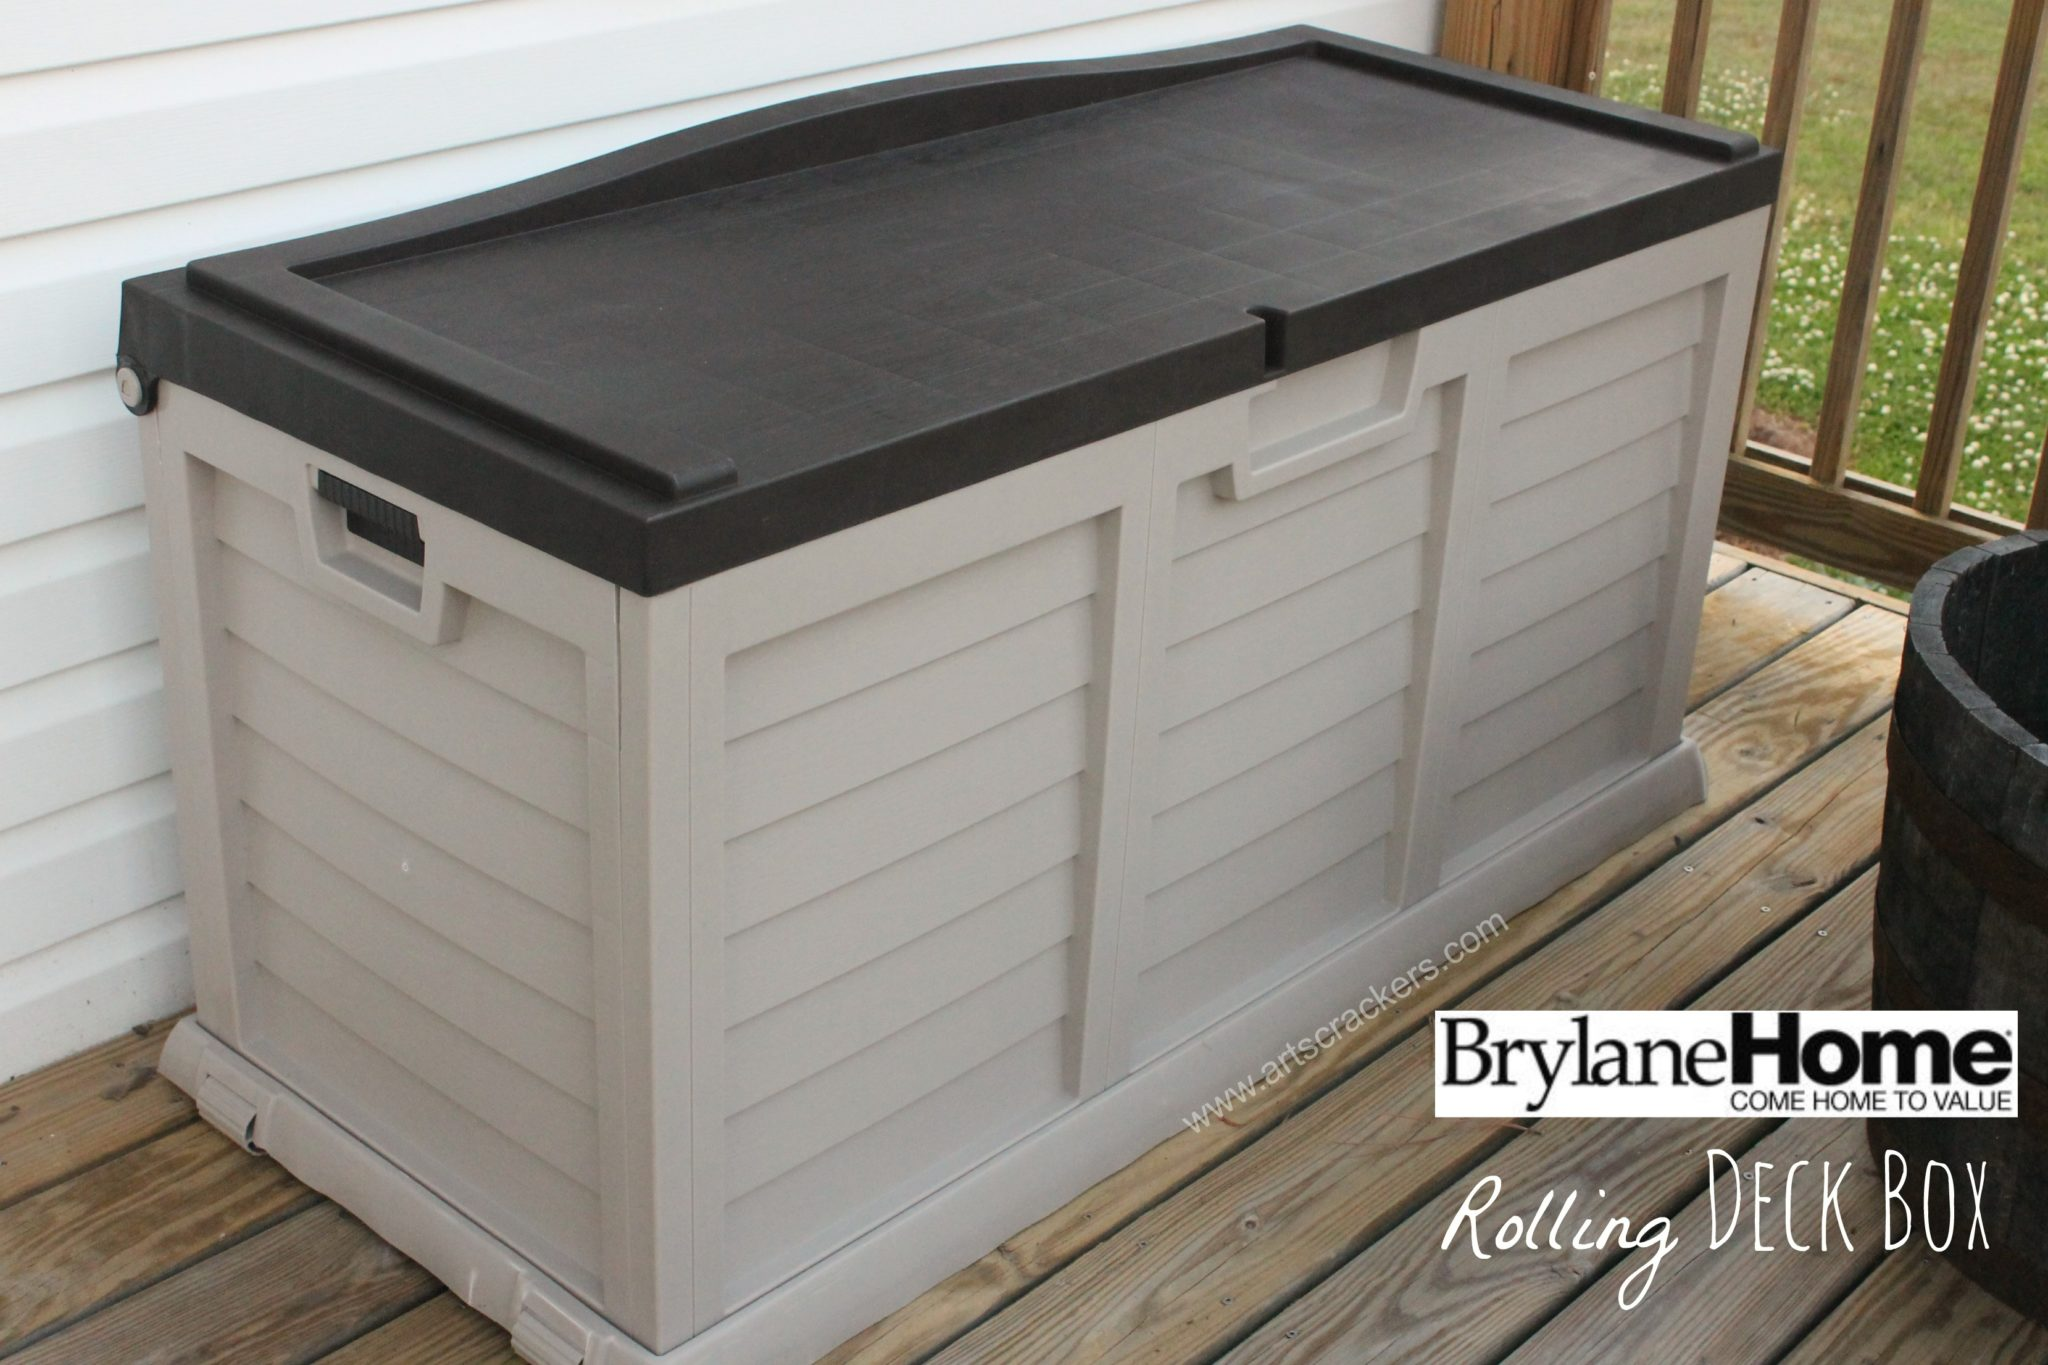 BrylaneHome Rolling Deck Storage Box